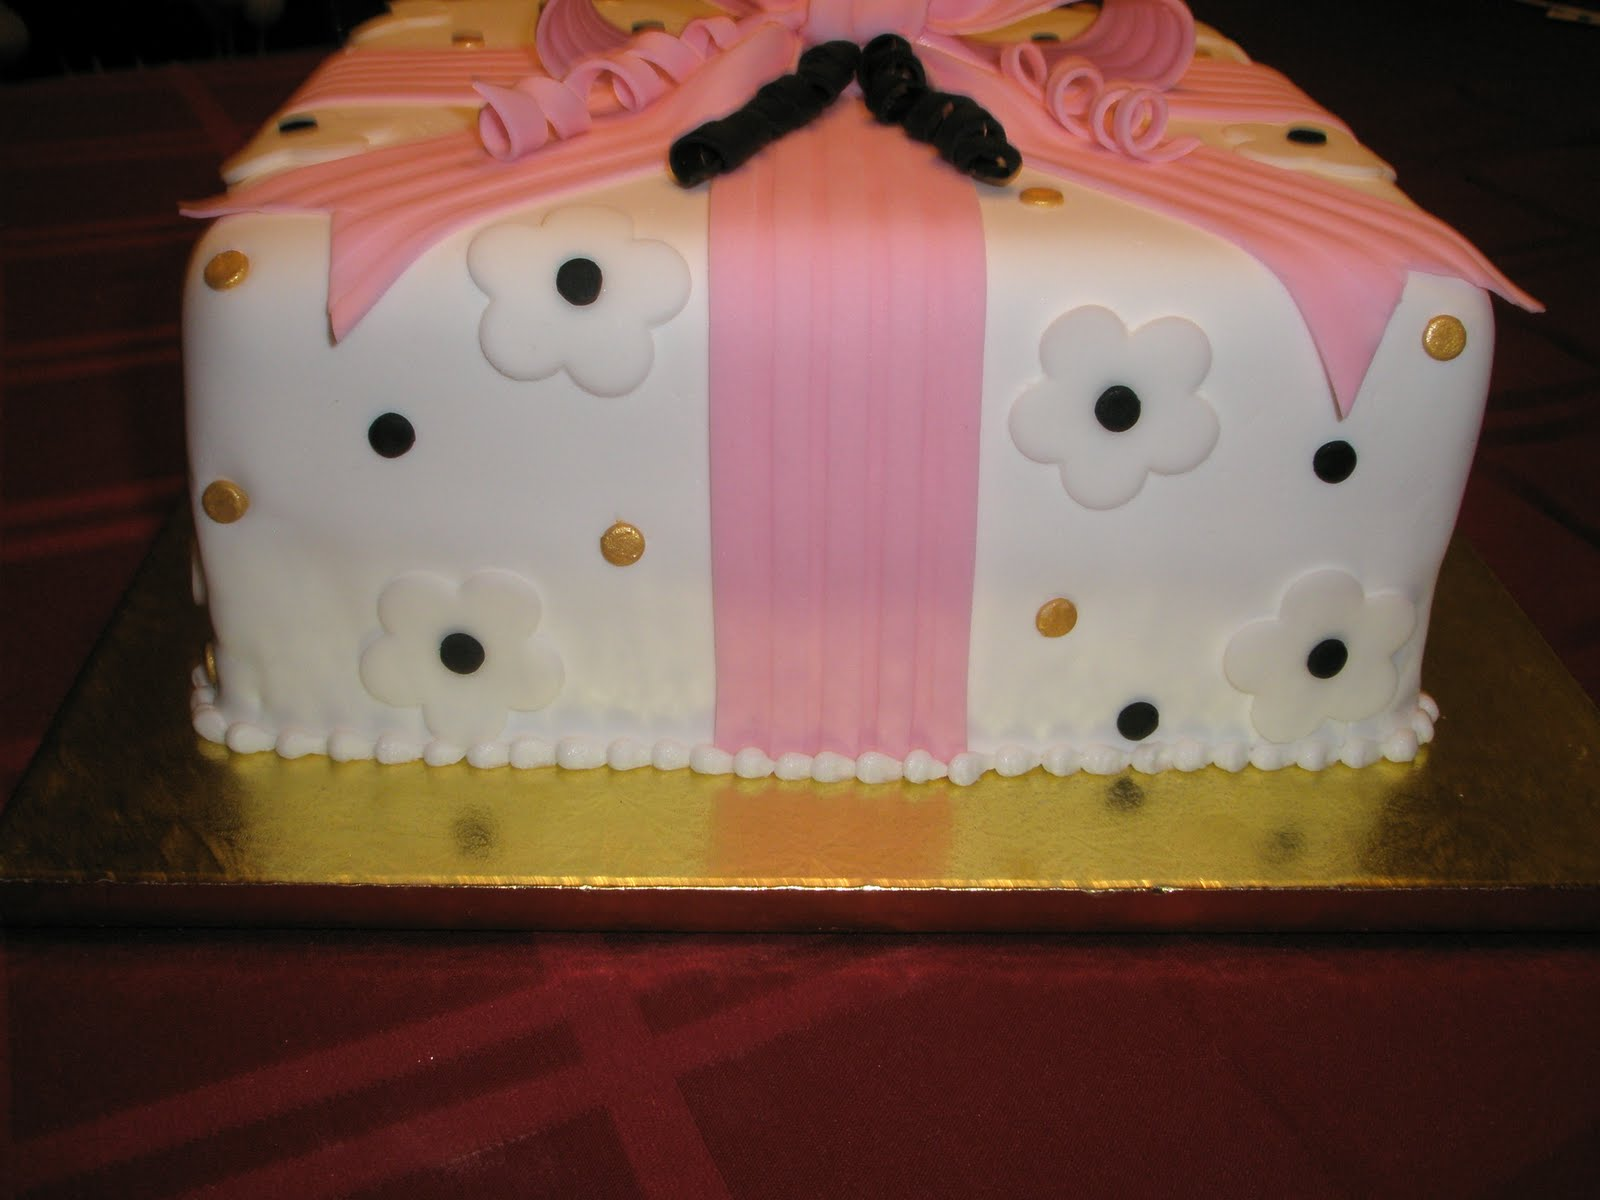 Cake Decorating Classes Georgia : 100+ [ Cake Decorating Classes Atlanta Ga ] Candy And ...